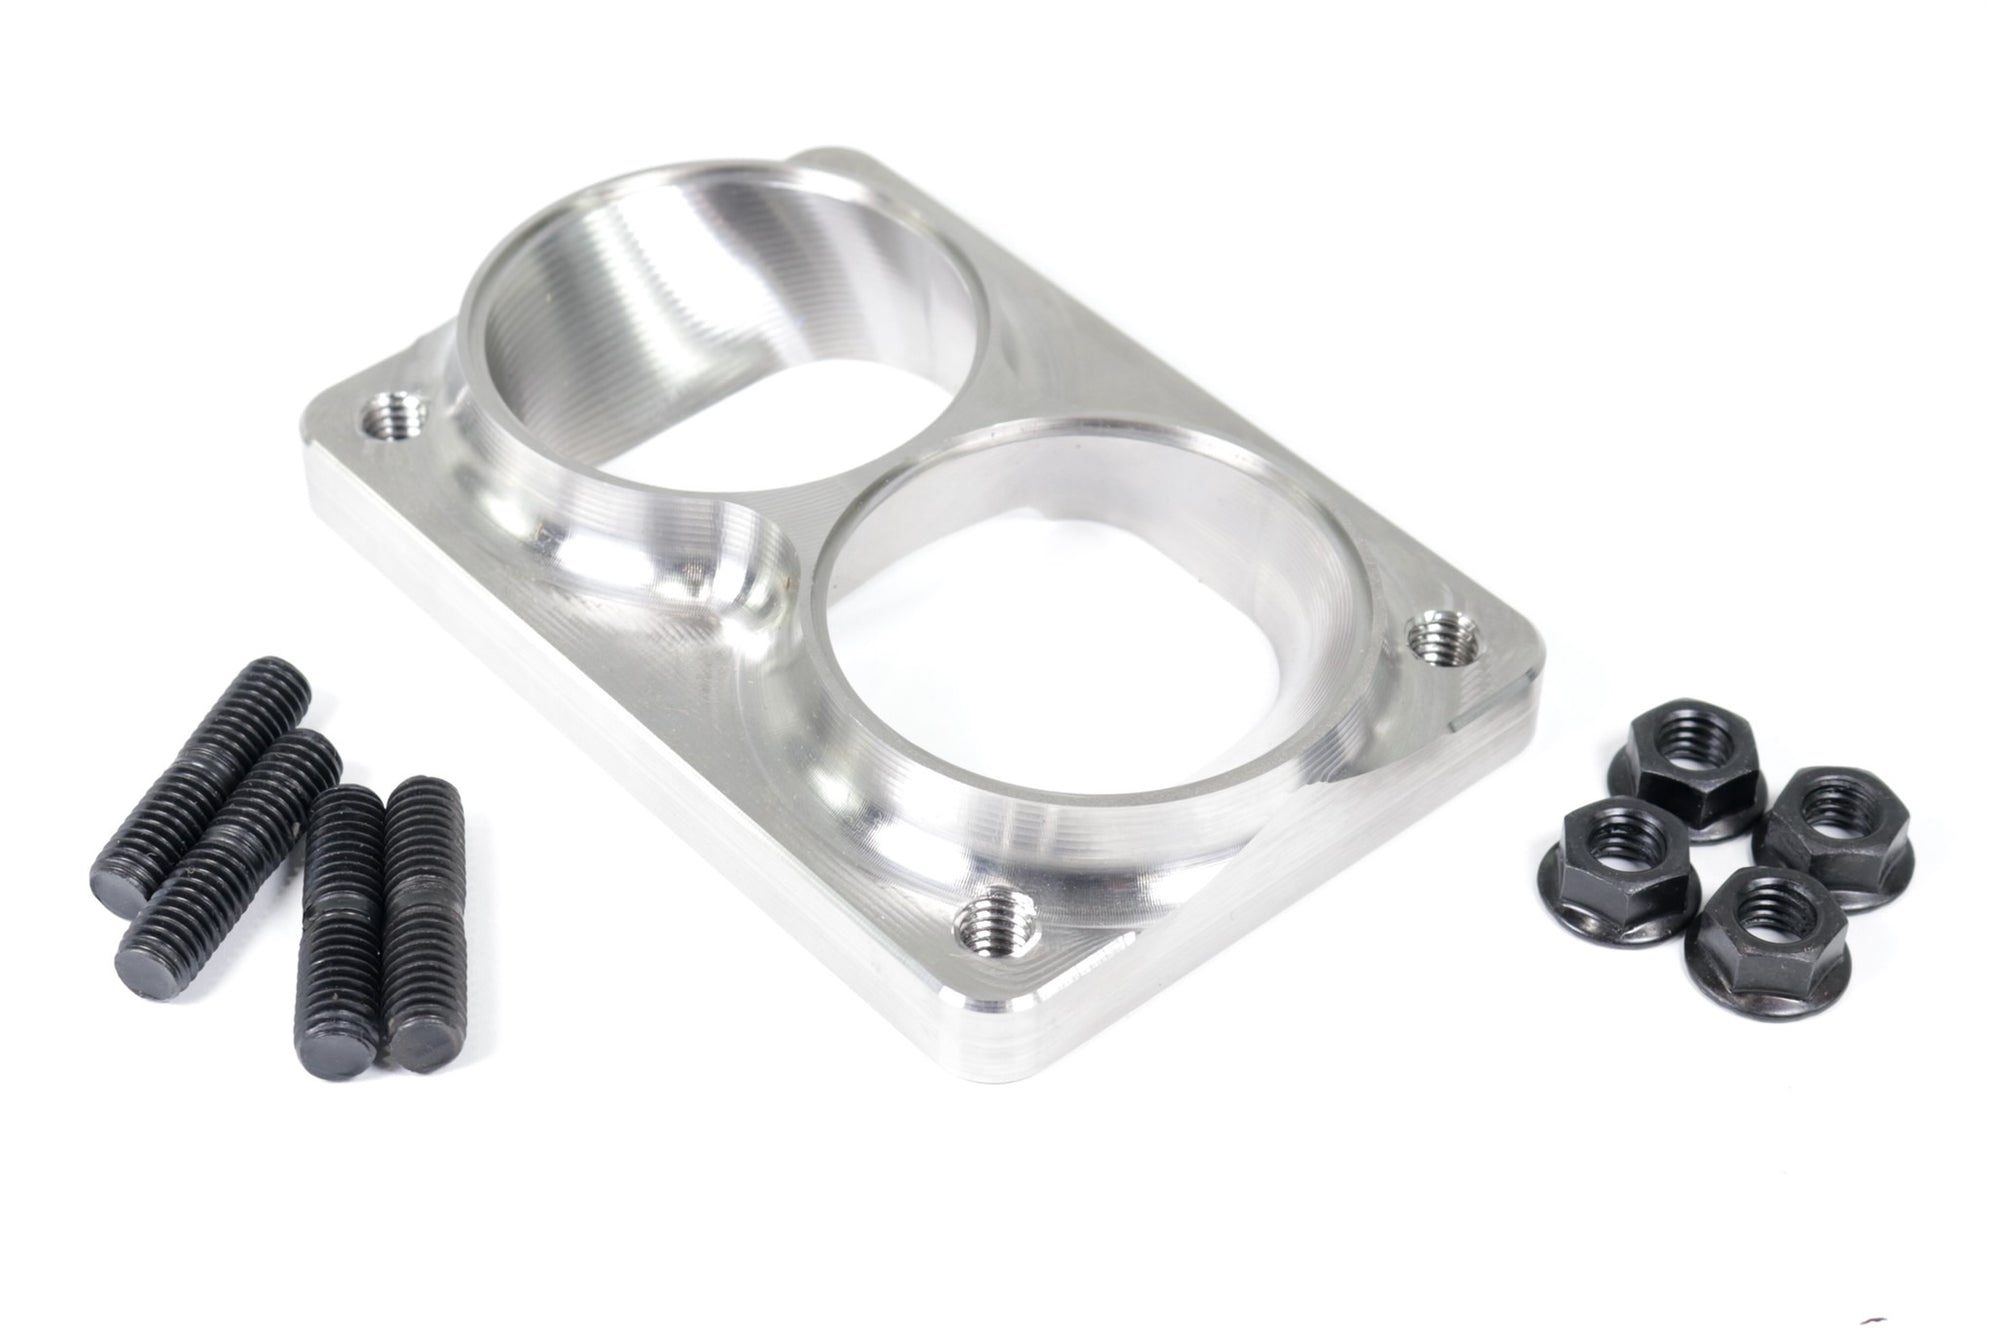 "Shearer Fab Billet Stainless T6 Flange, Dual 2.5"" Inlet SF02-02006-Shearer Fabrications-Motion Raceworks"